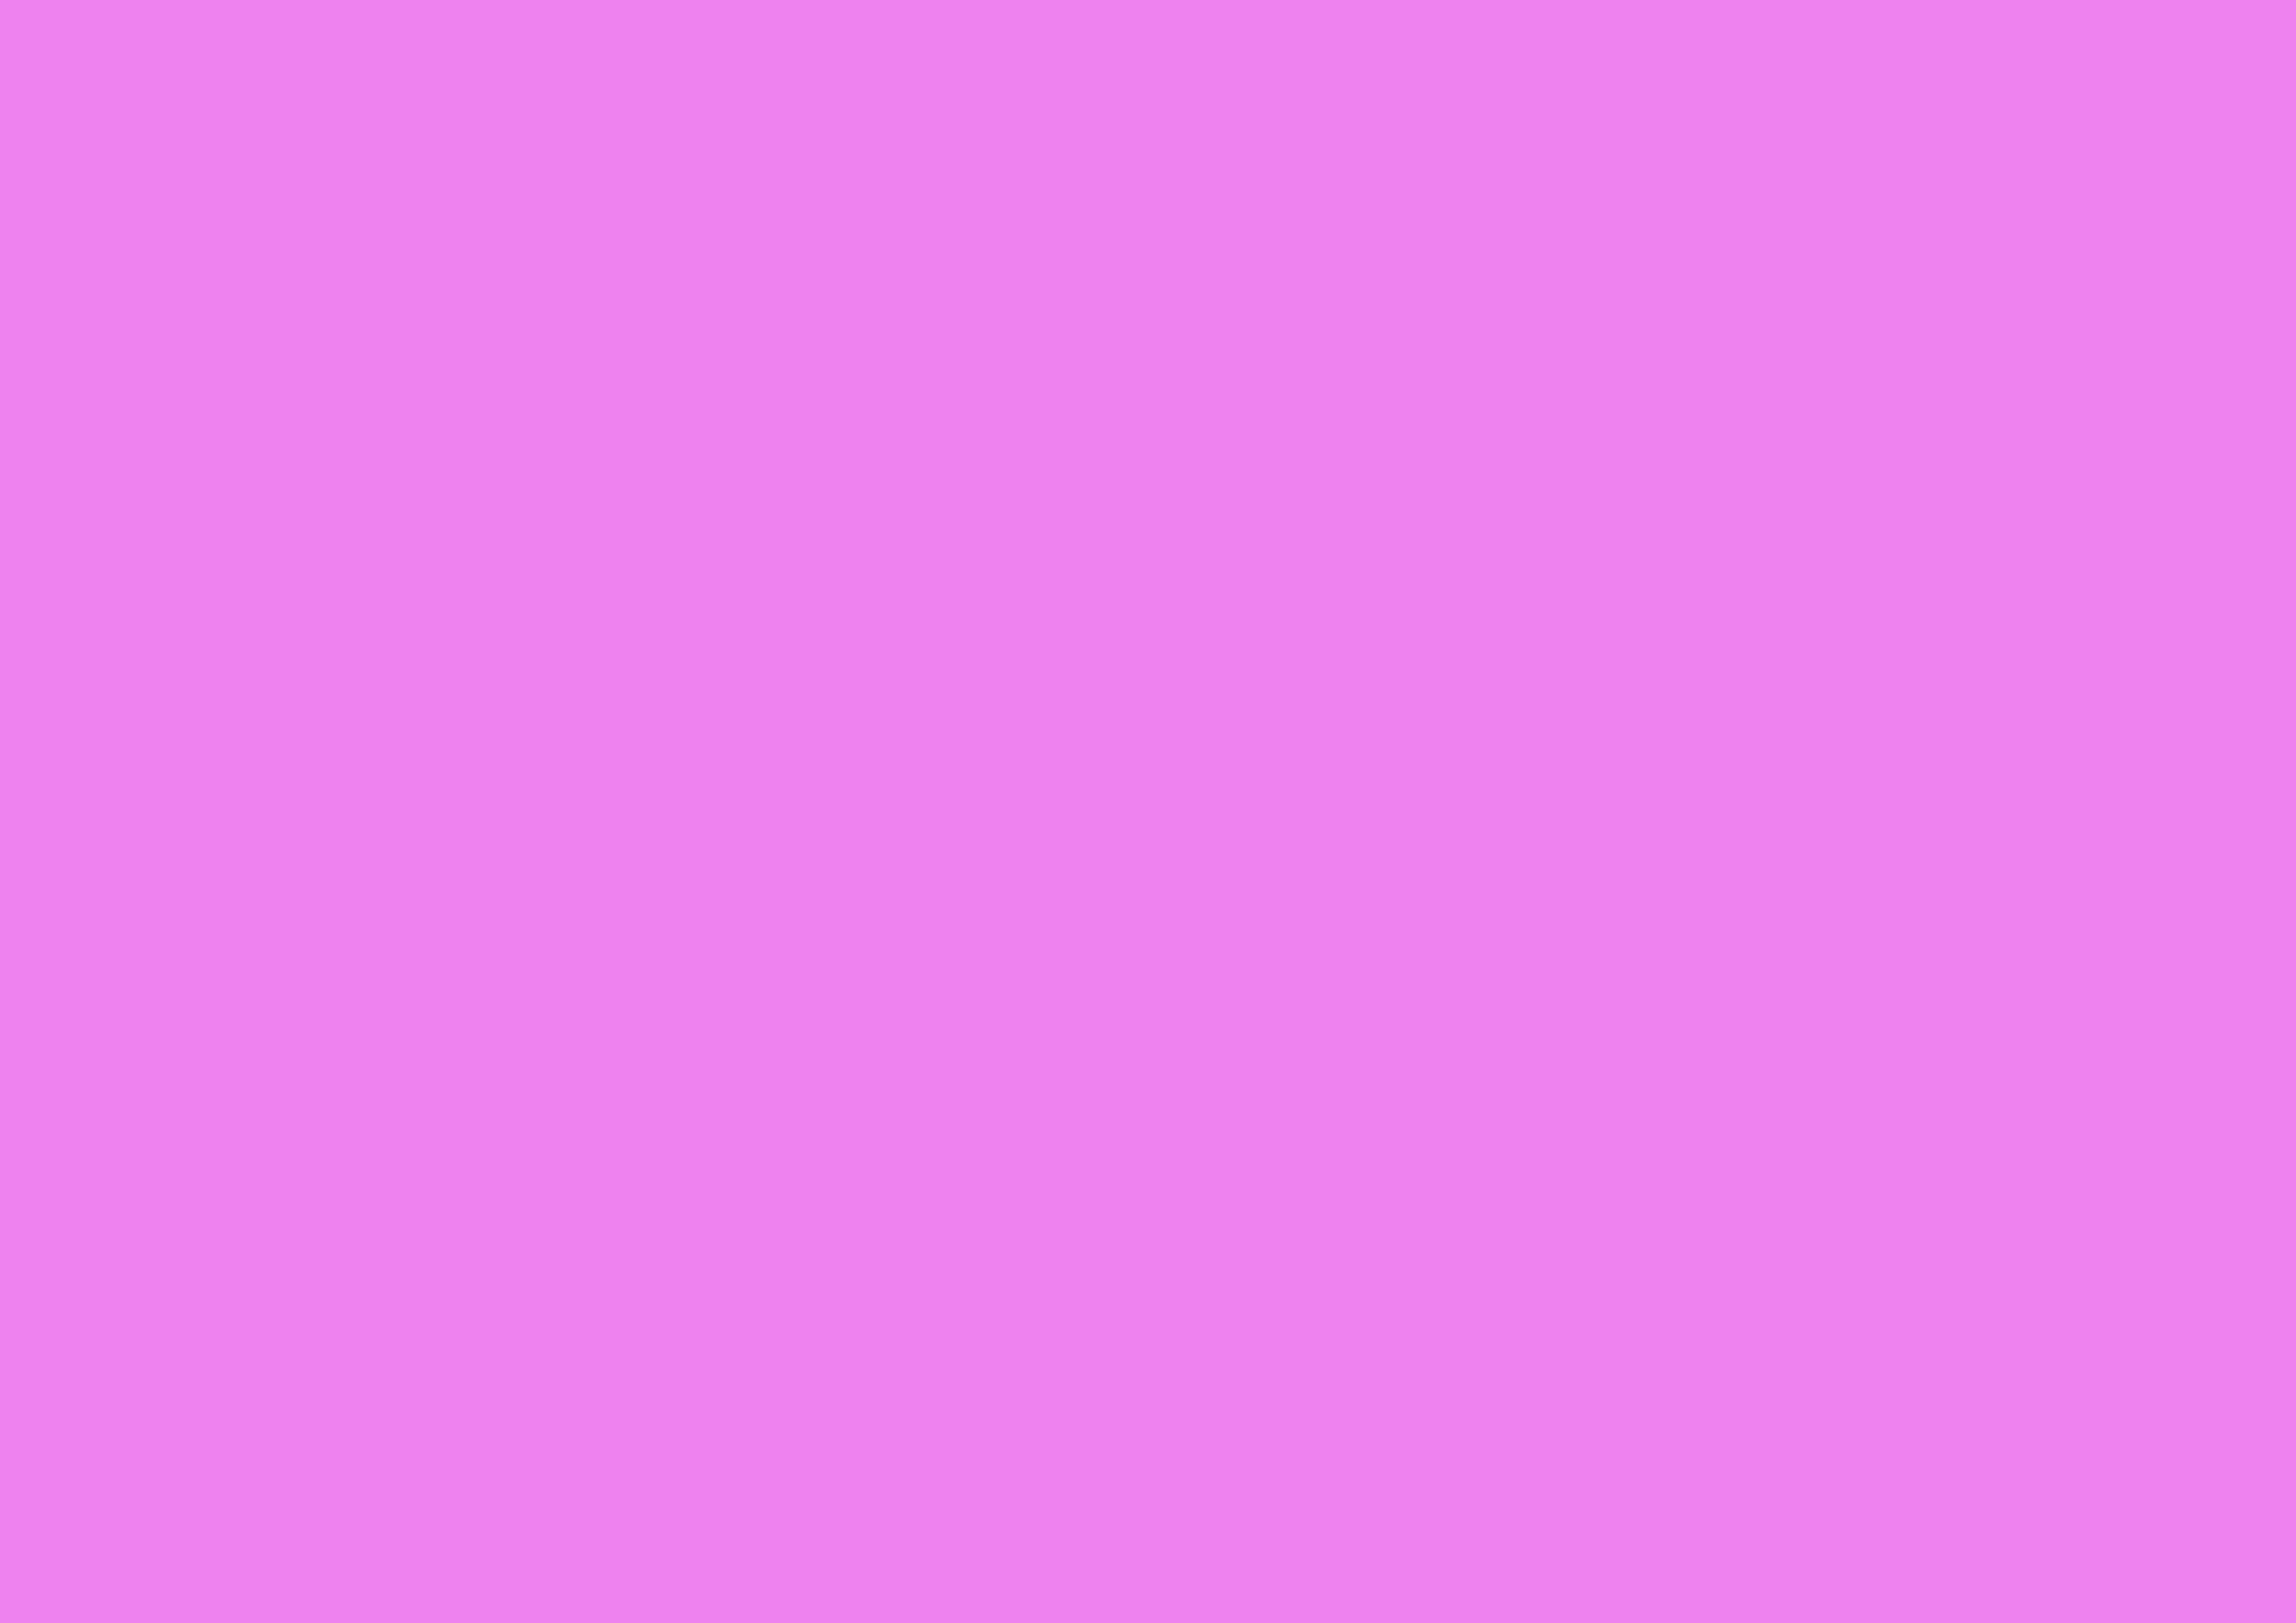 3508x2480 Lavender Magenta Solid Color Background